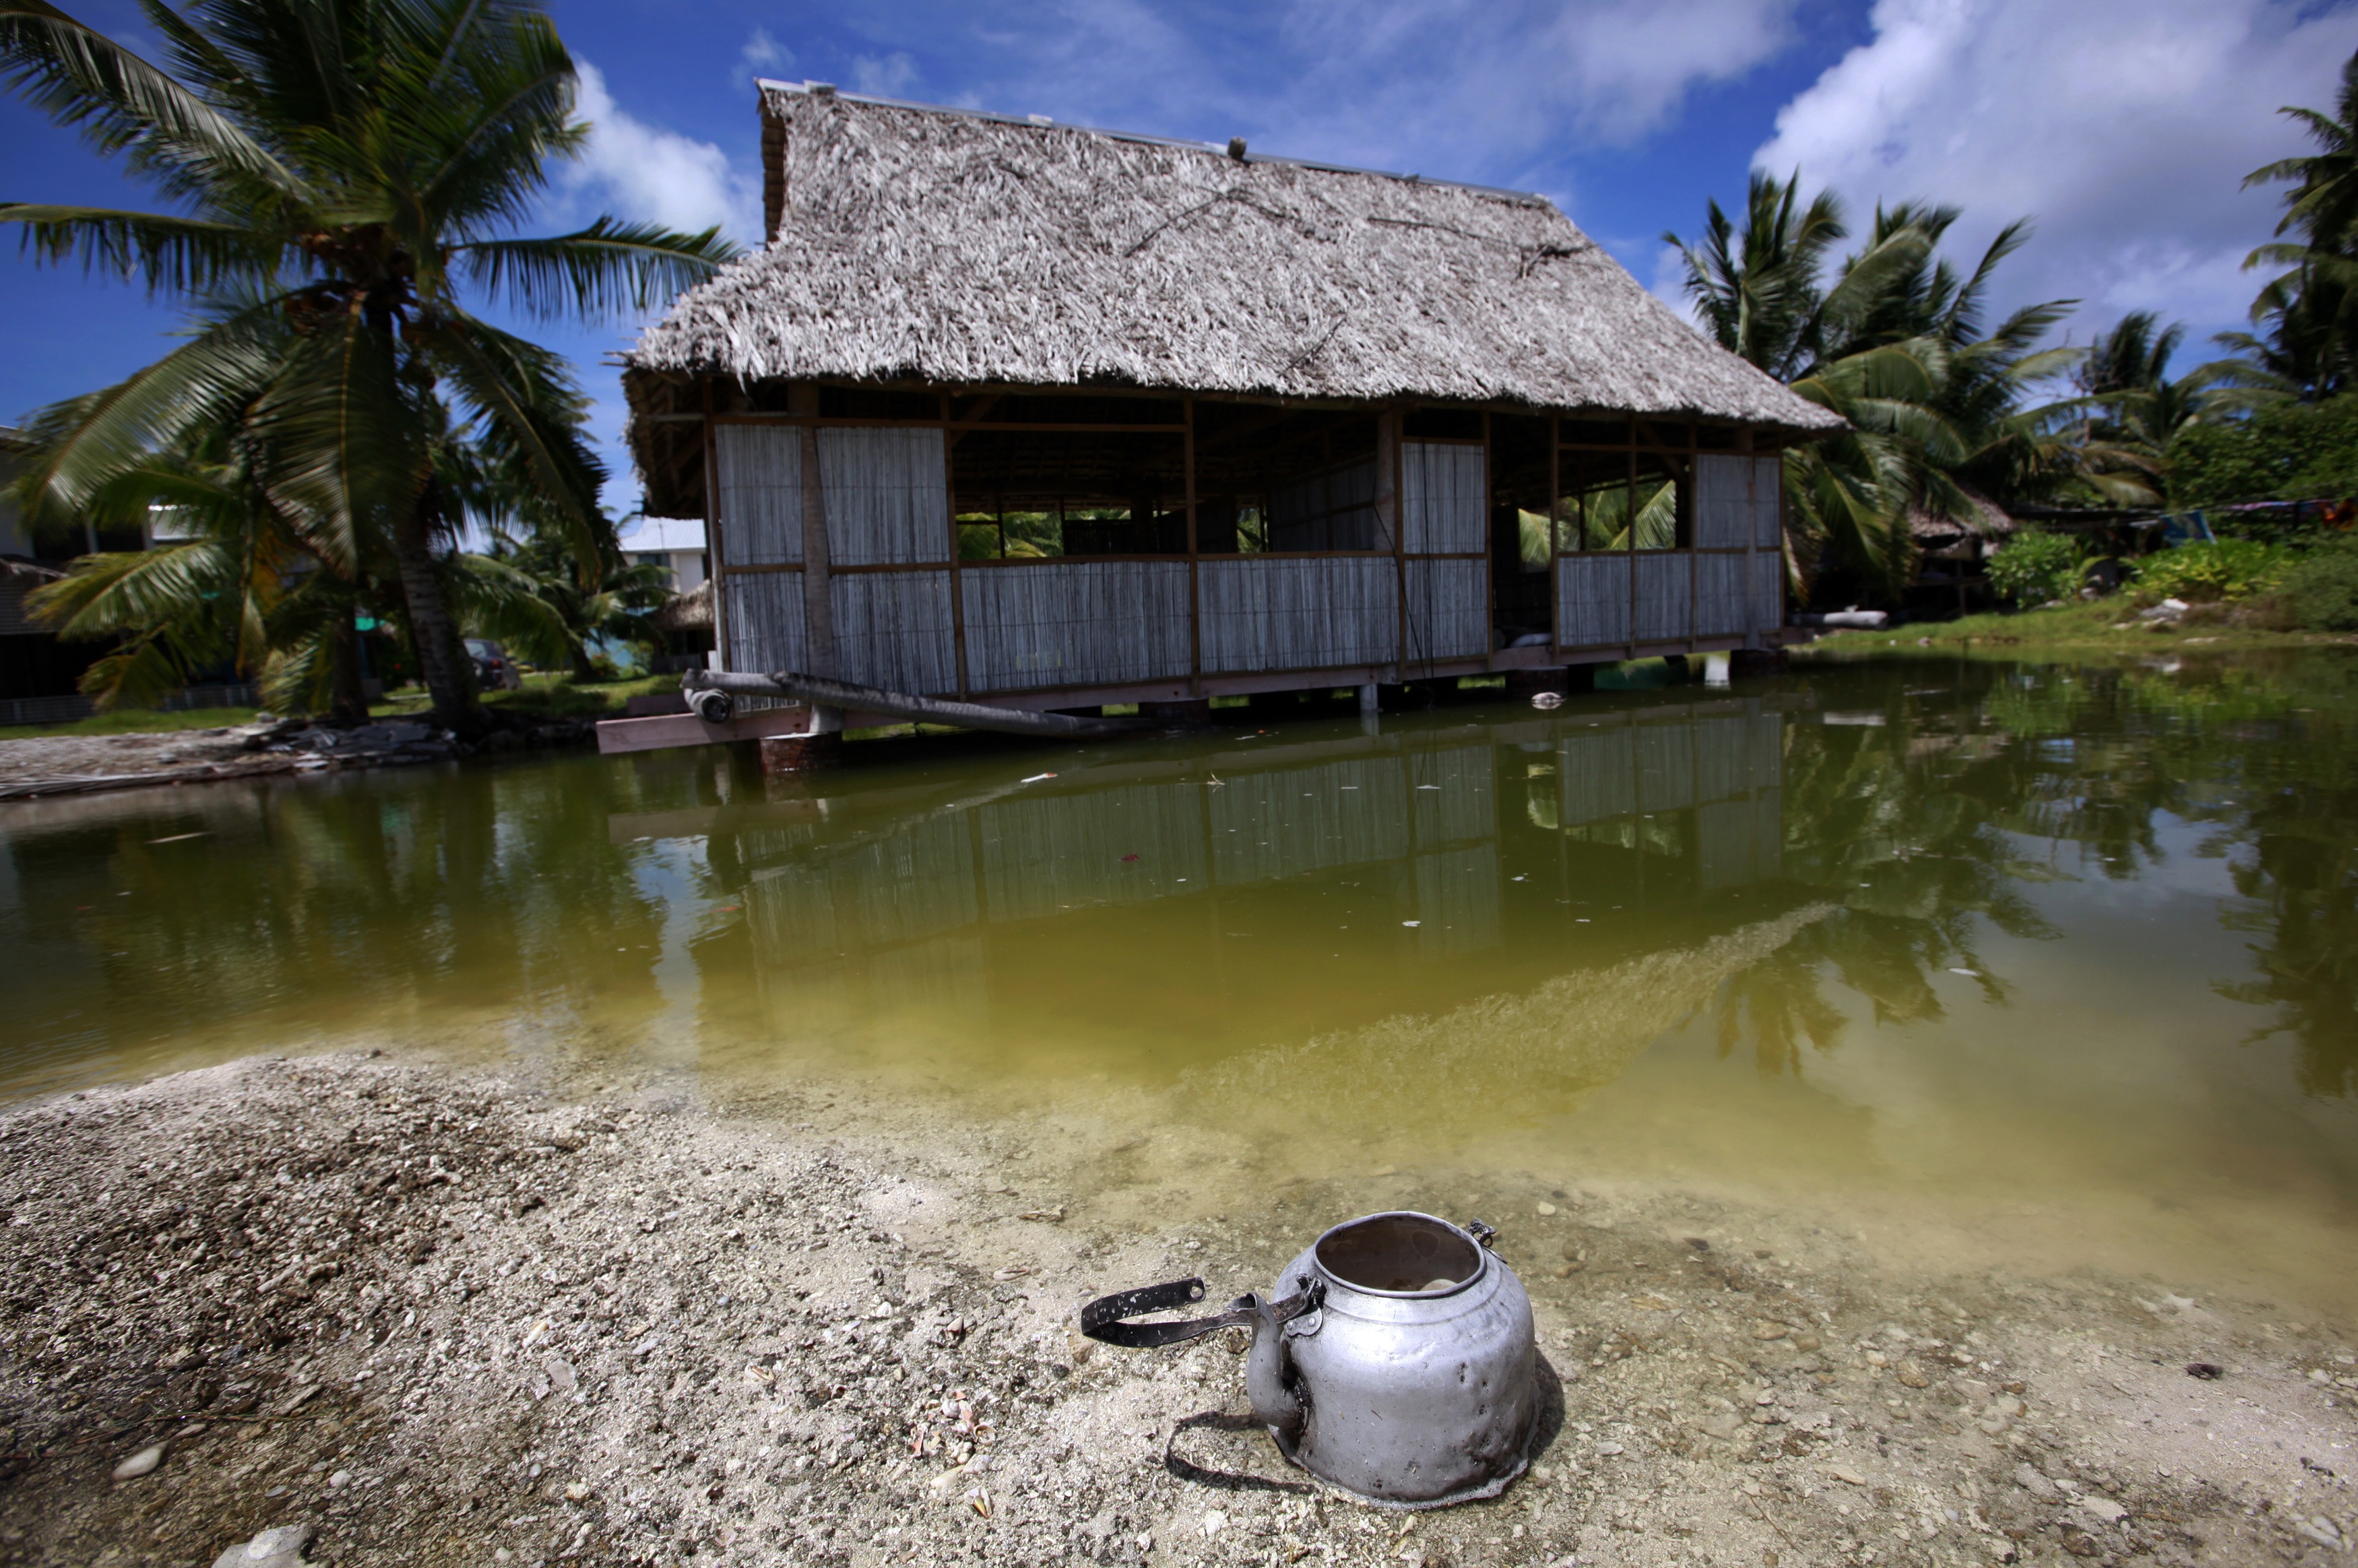 Climate Funding is the core issue for Pacific Islanders